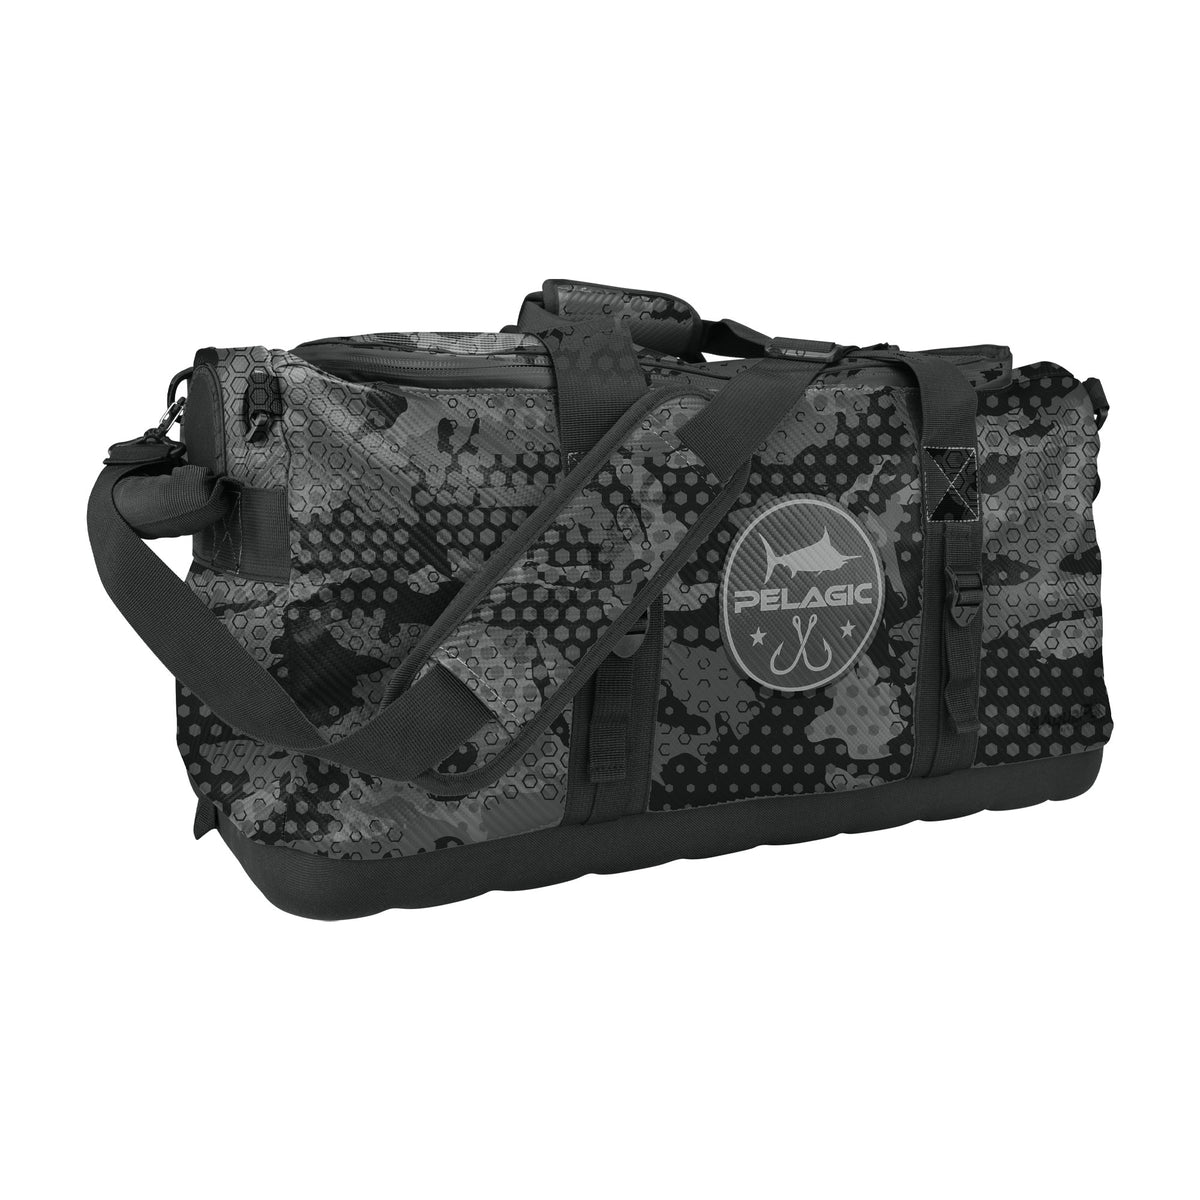 50L Aquapak Duffel Bag Big Image - 1